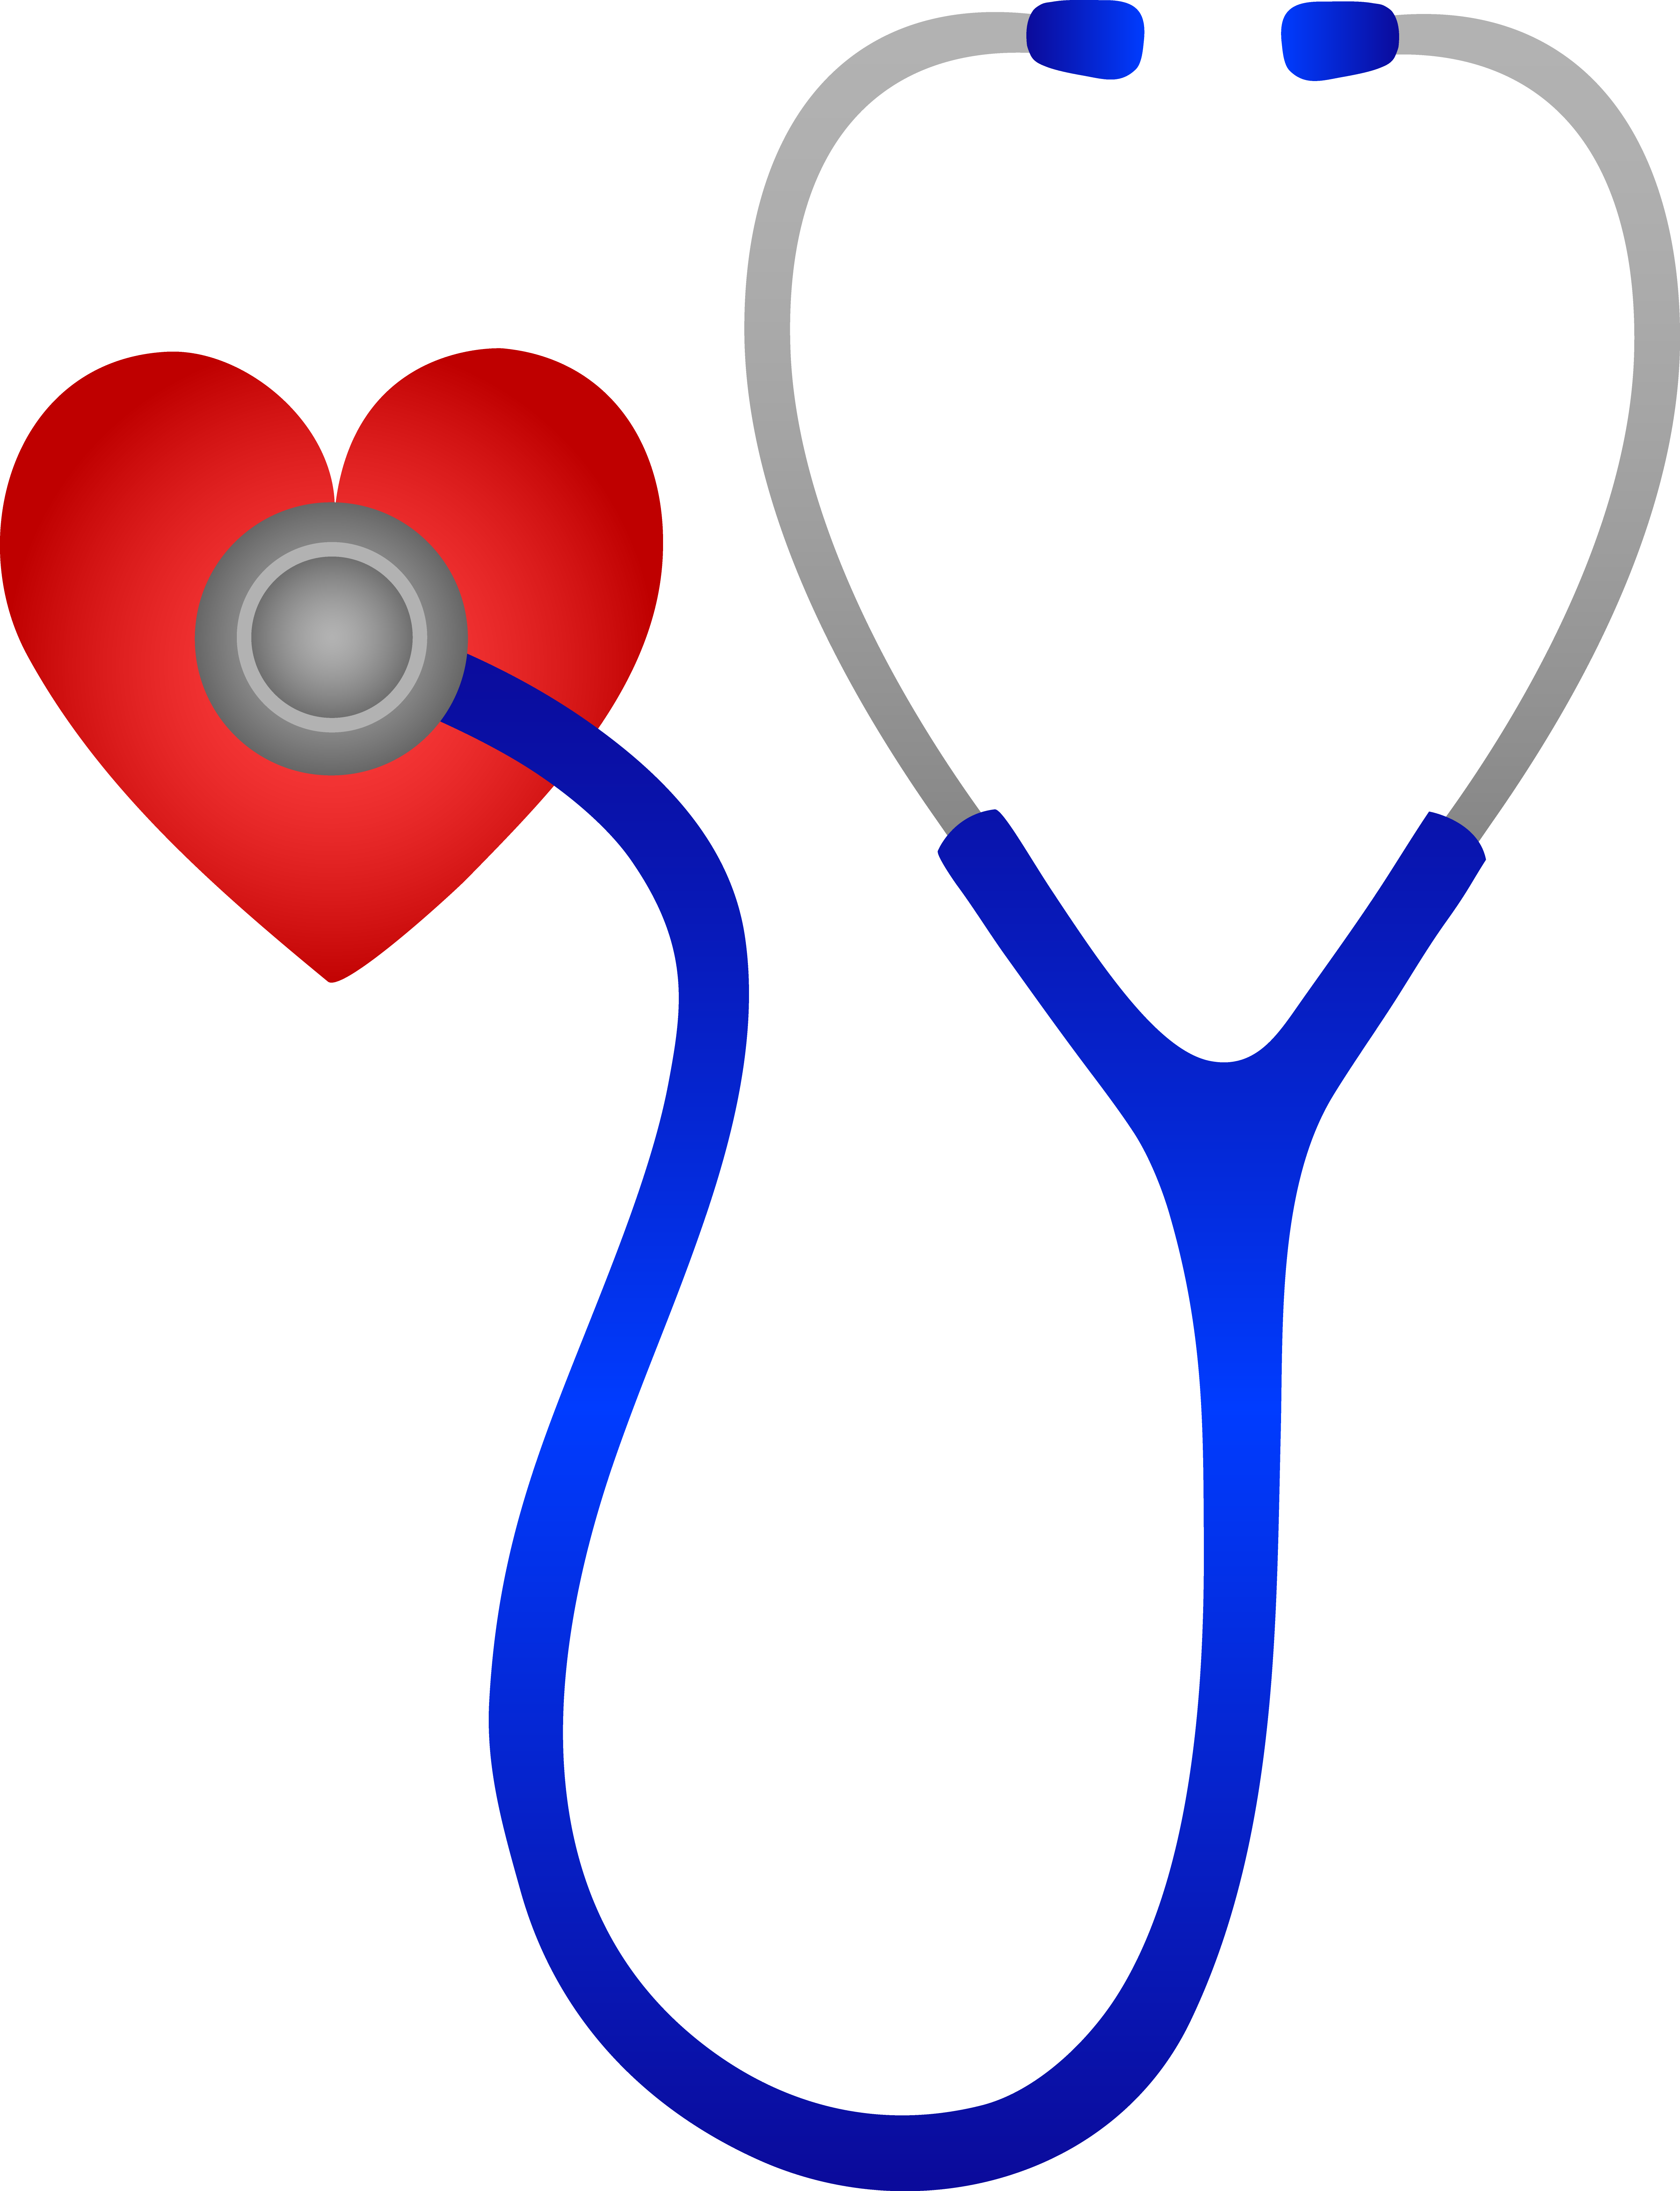 Blue Stethoscope and Red Heart | Dr.❤ | Pinterest | Stethoscope ... for Stethoscope Illustration Png  166kxo